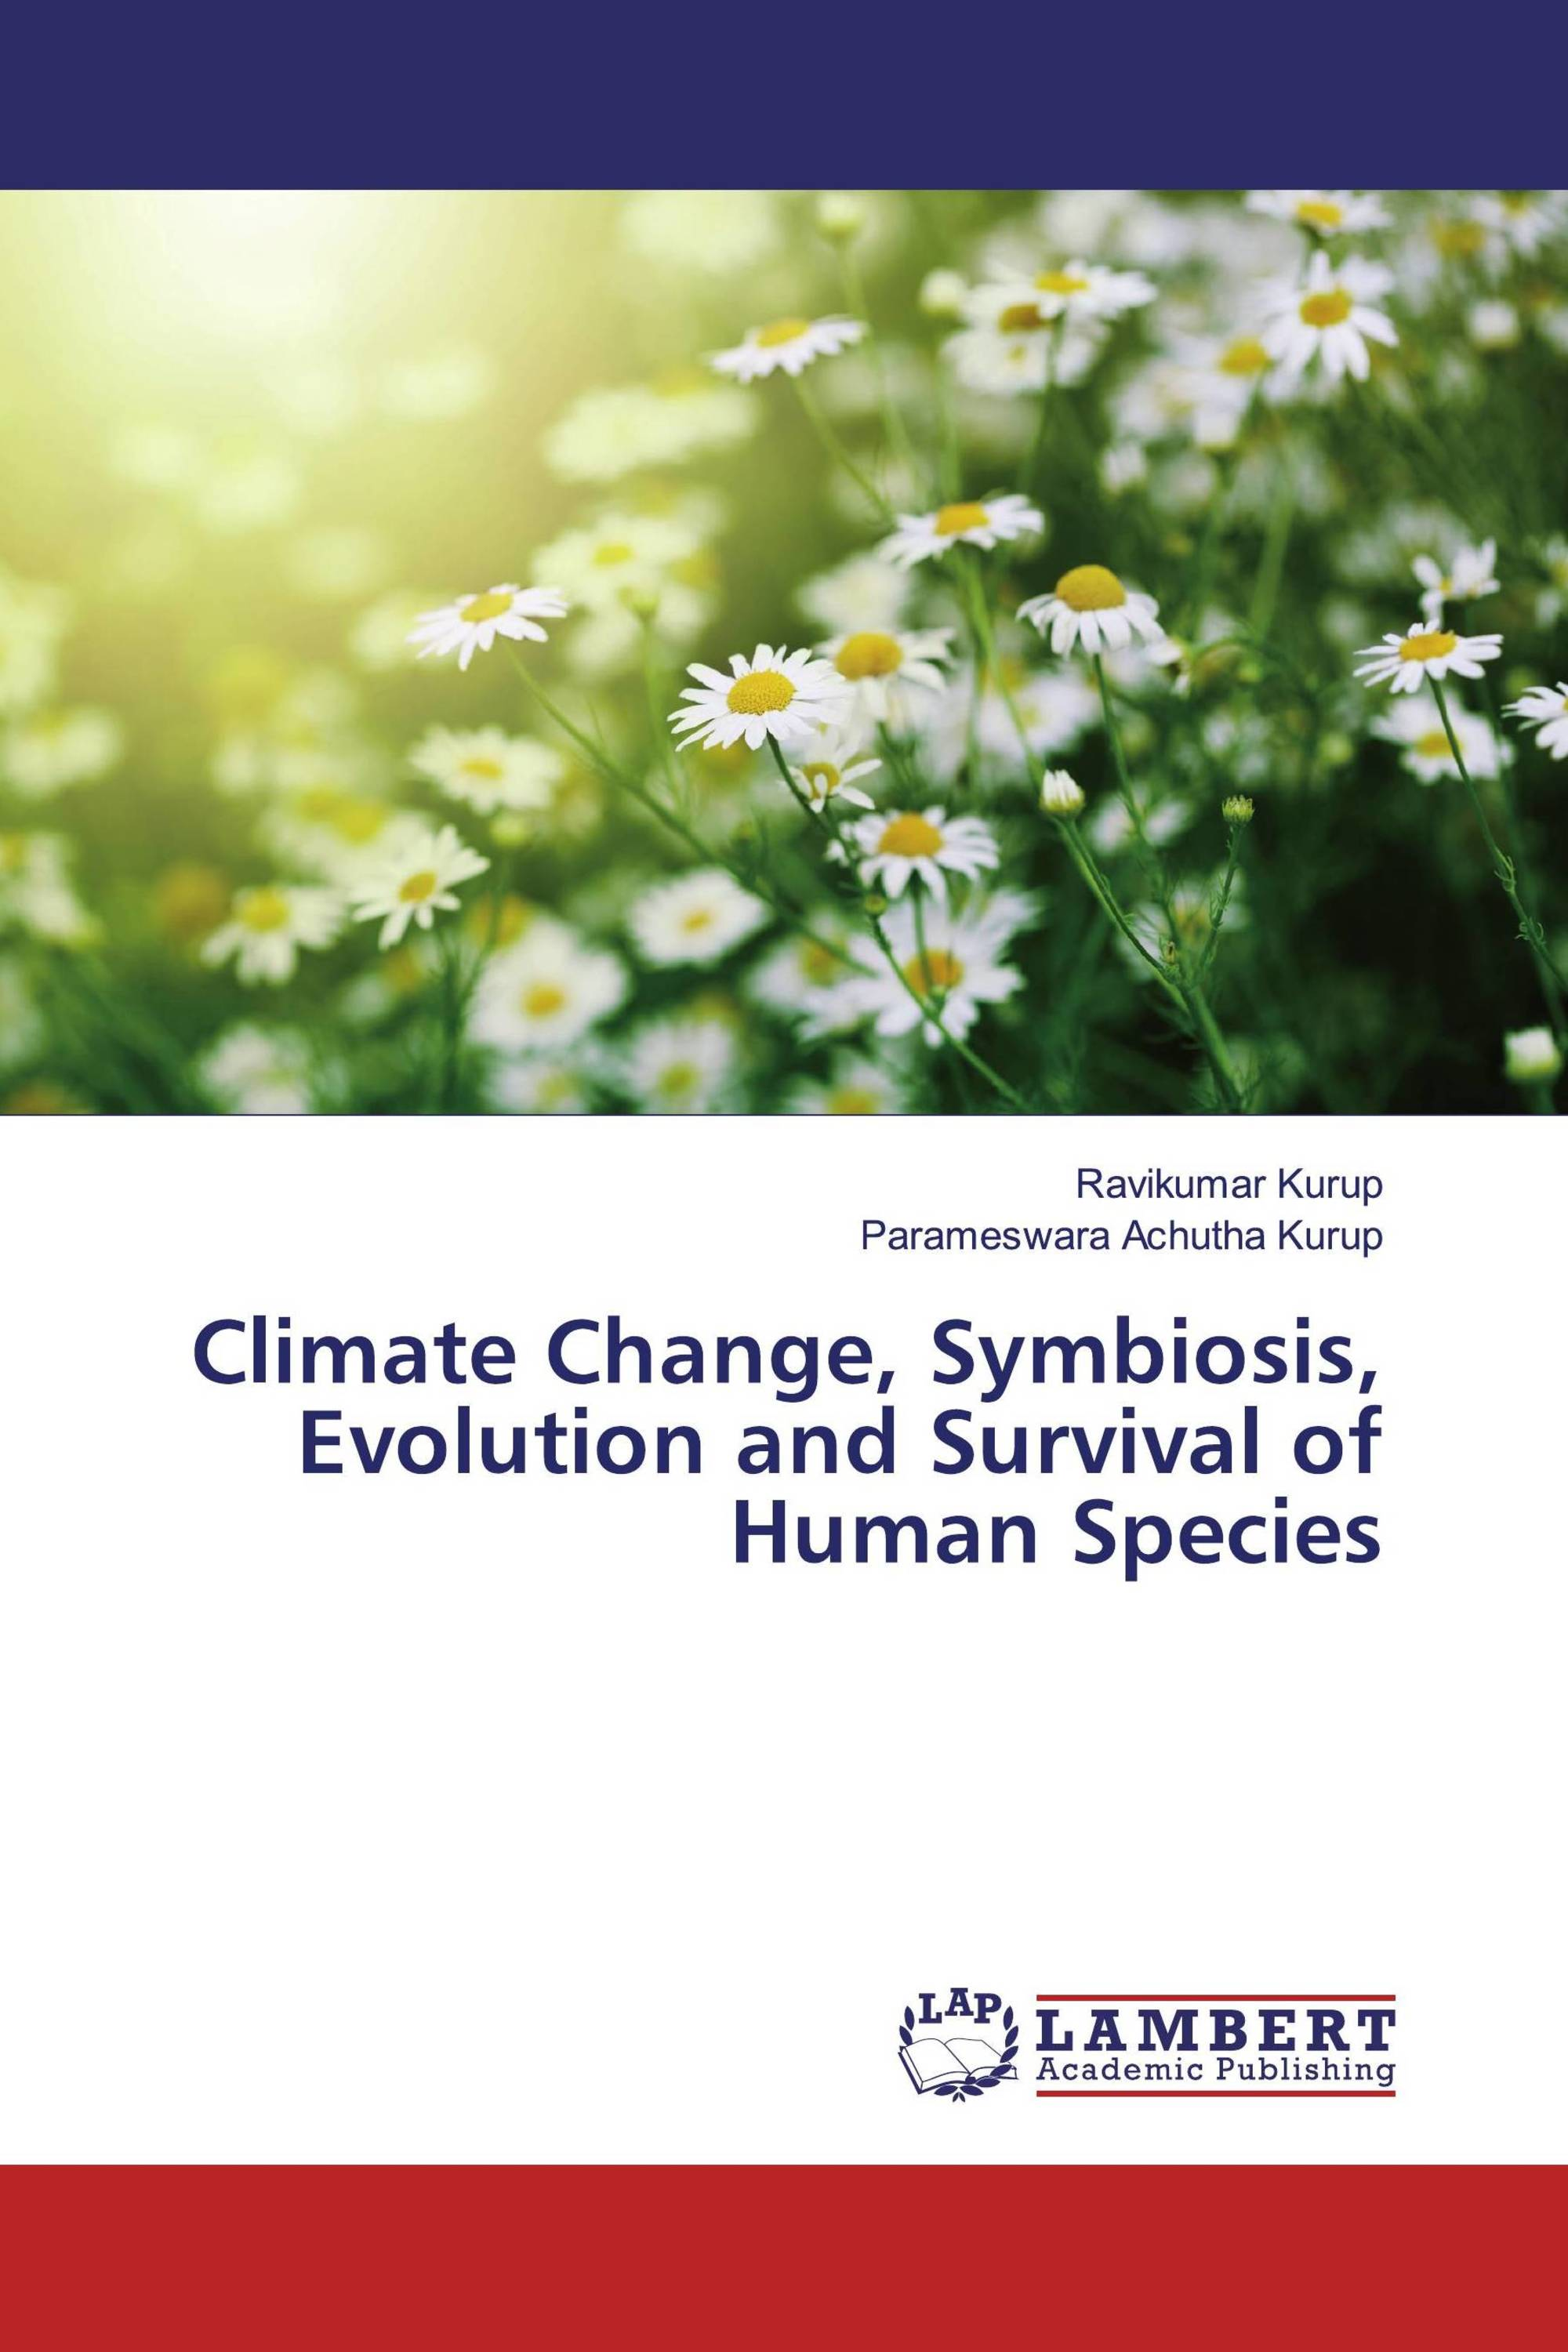 Climate Change, Symbiosis, Evolution and Survival of Human Species